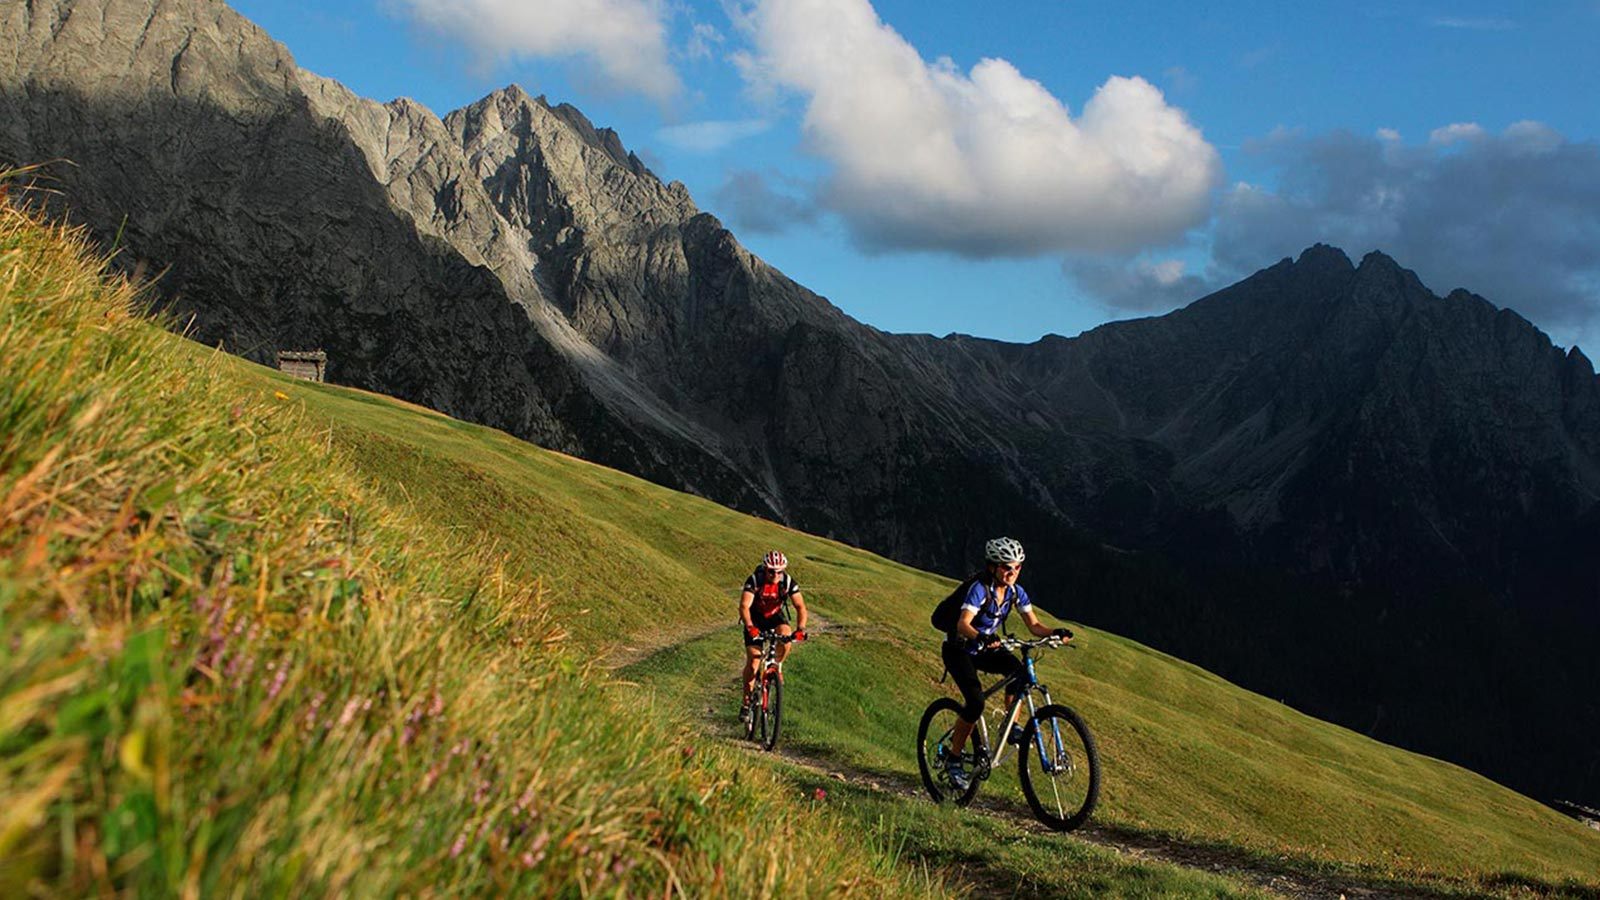 A couple enjoy mountain biking during a sunny day in the Dolomites